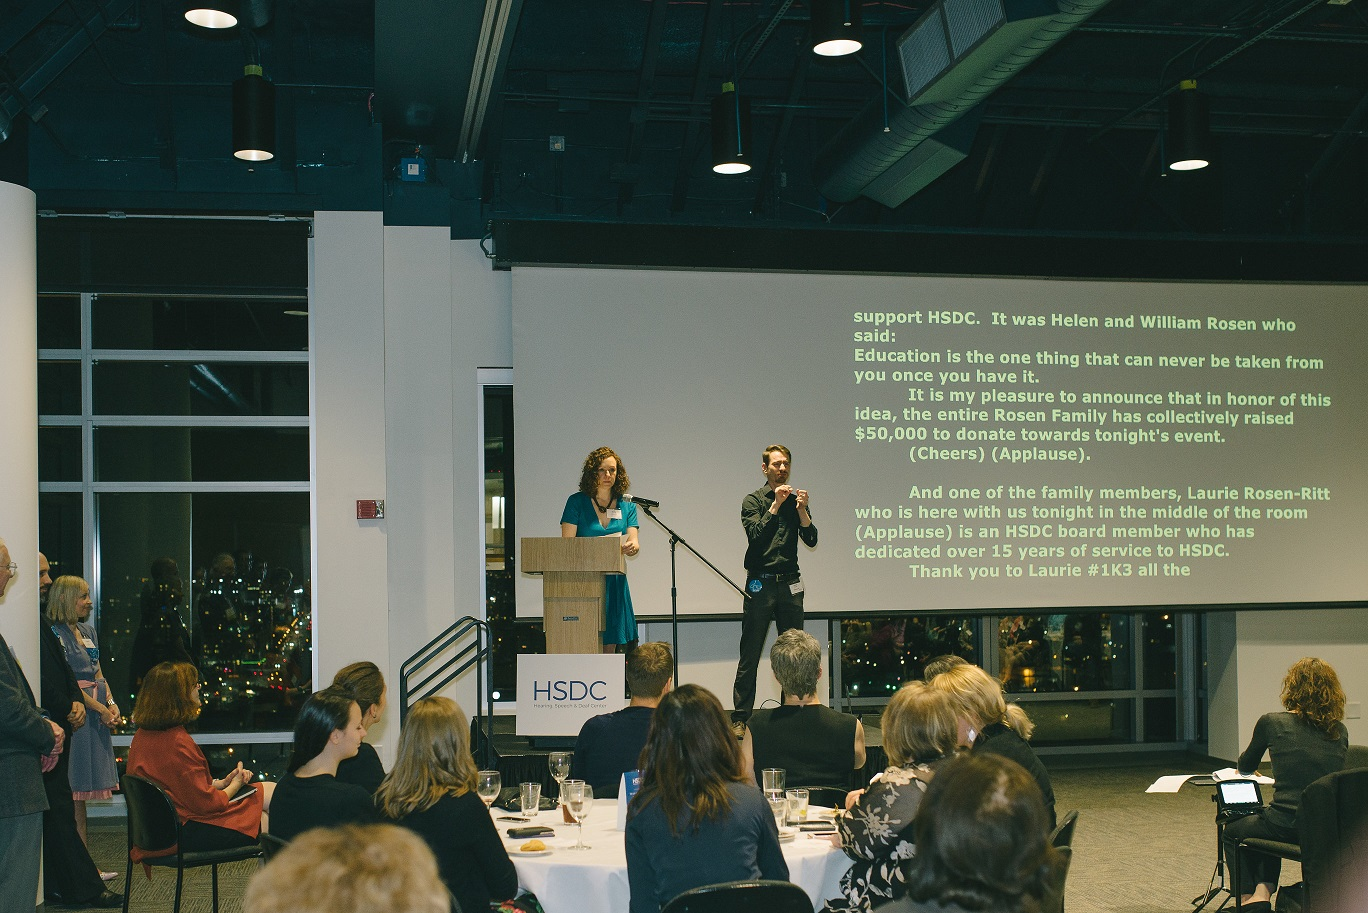 Photo from an HSDC's fundraising event. Audience is sitting at round dining tables with a speaker at the podium. On stage with the speaker is a working Deaf Interpreter next to a screen with the evening Real Time Captioning transcript being projected.